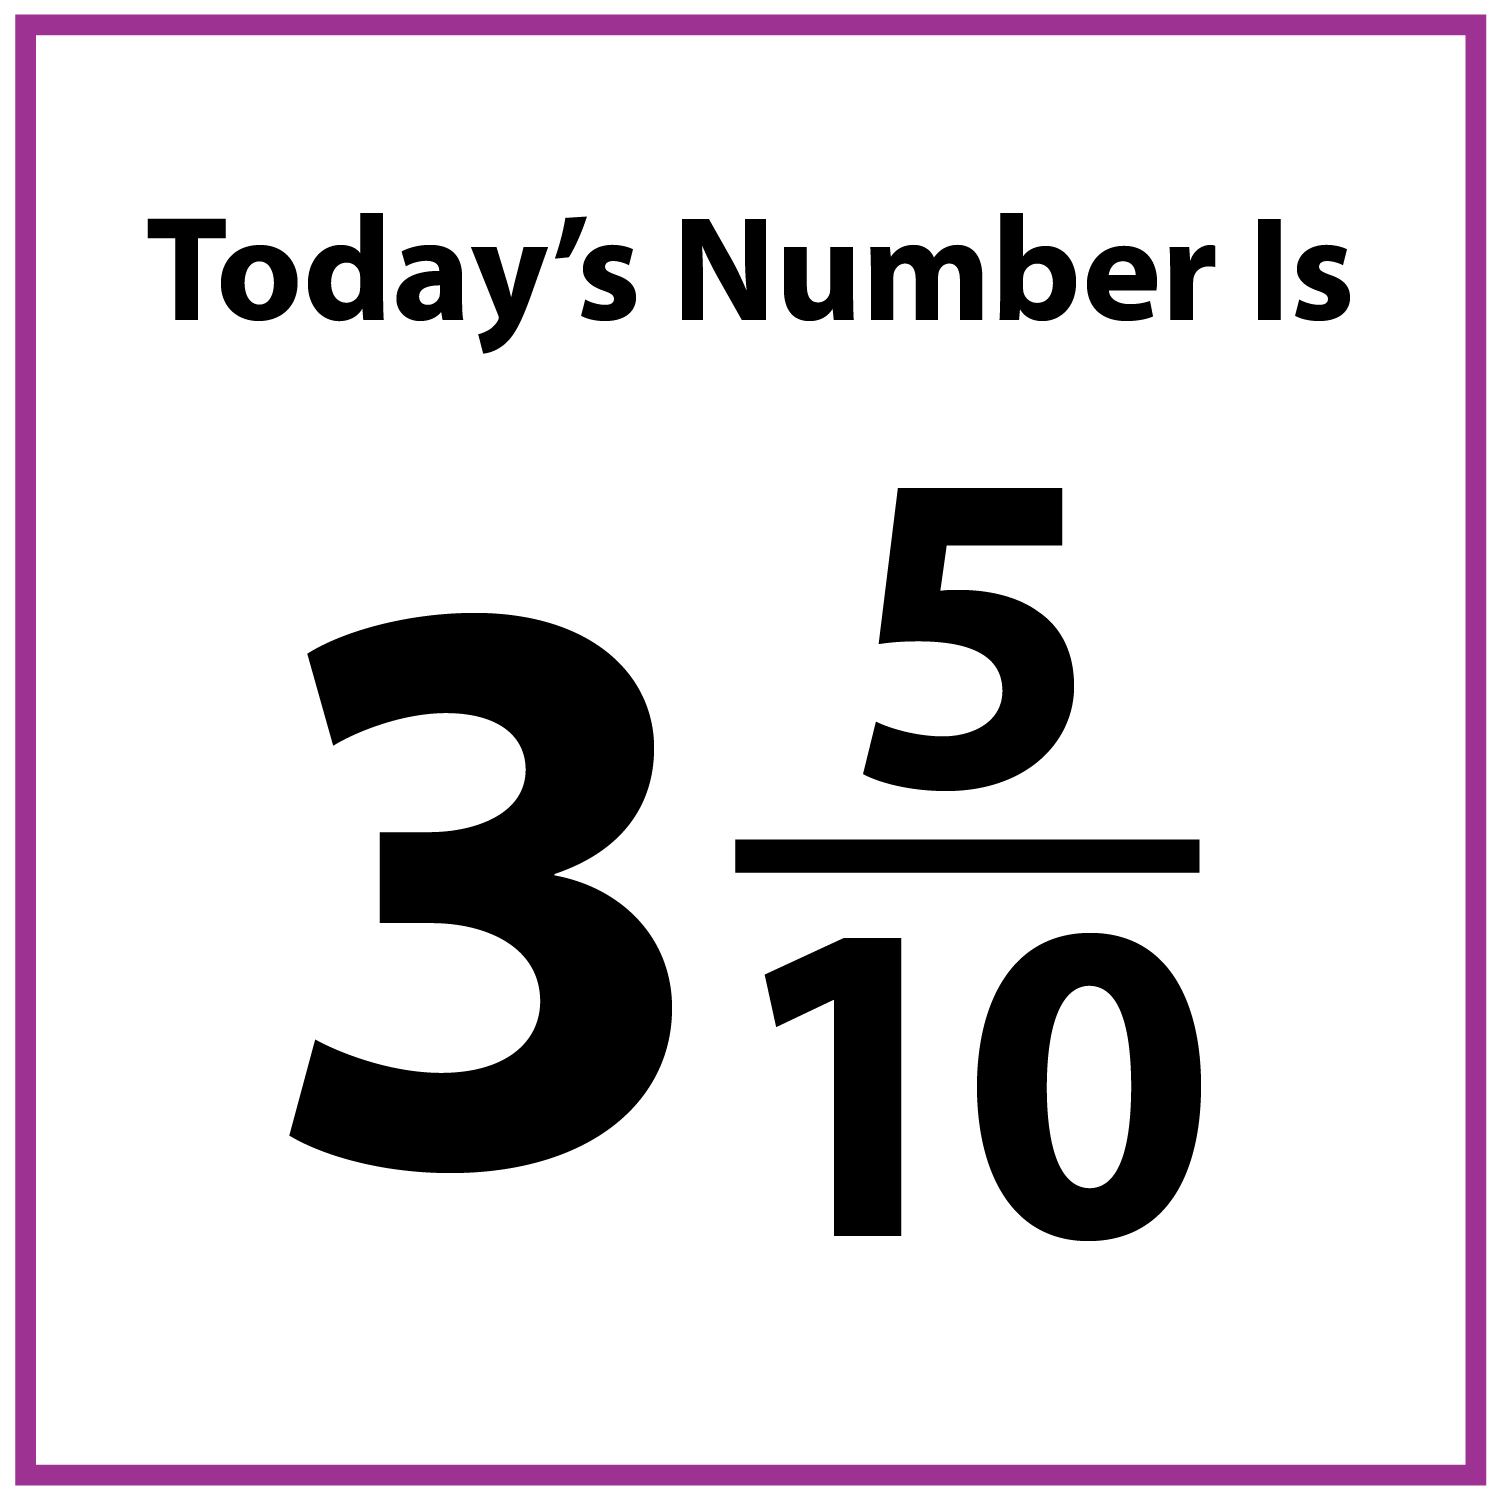 Today's number is 3 and 5-tenths.